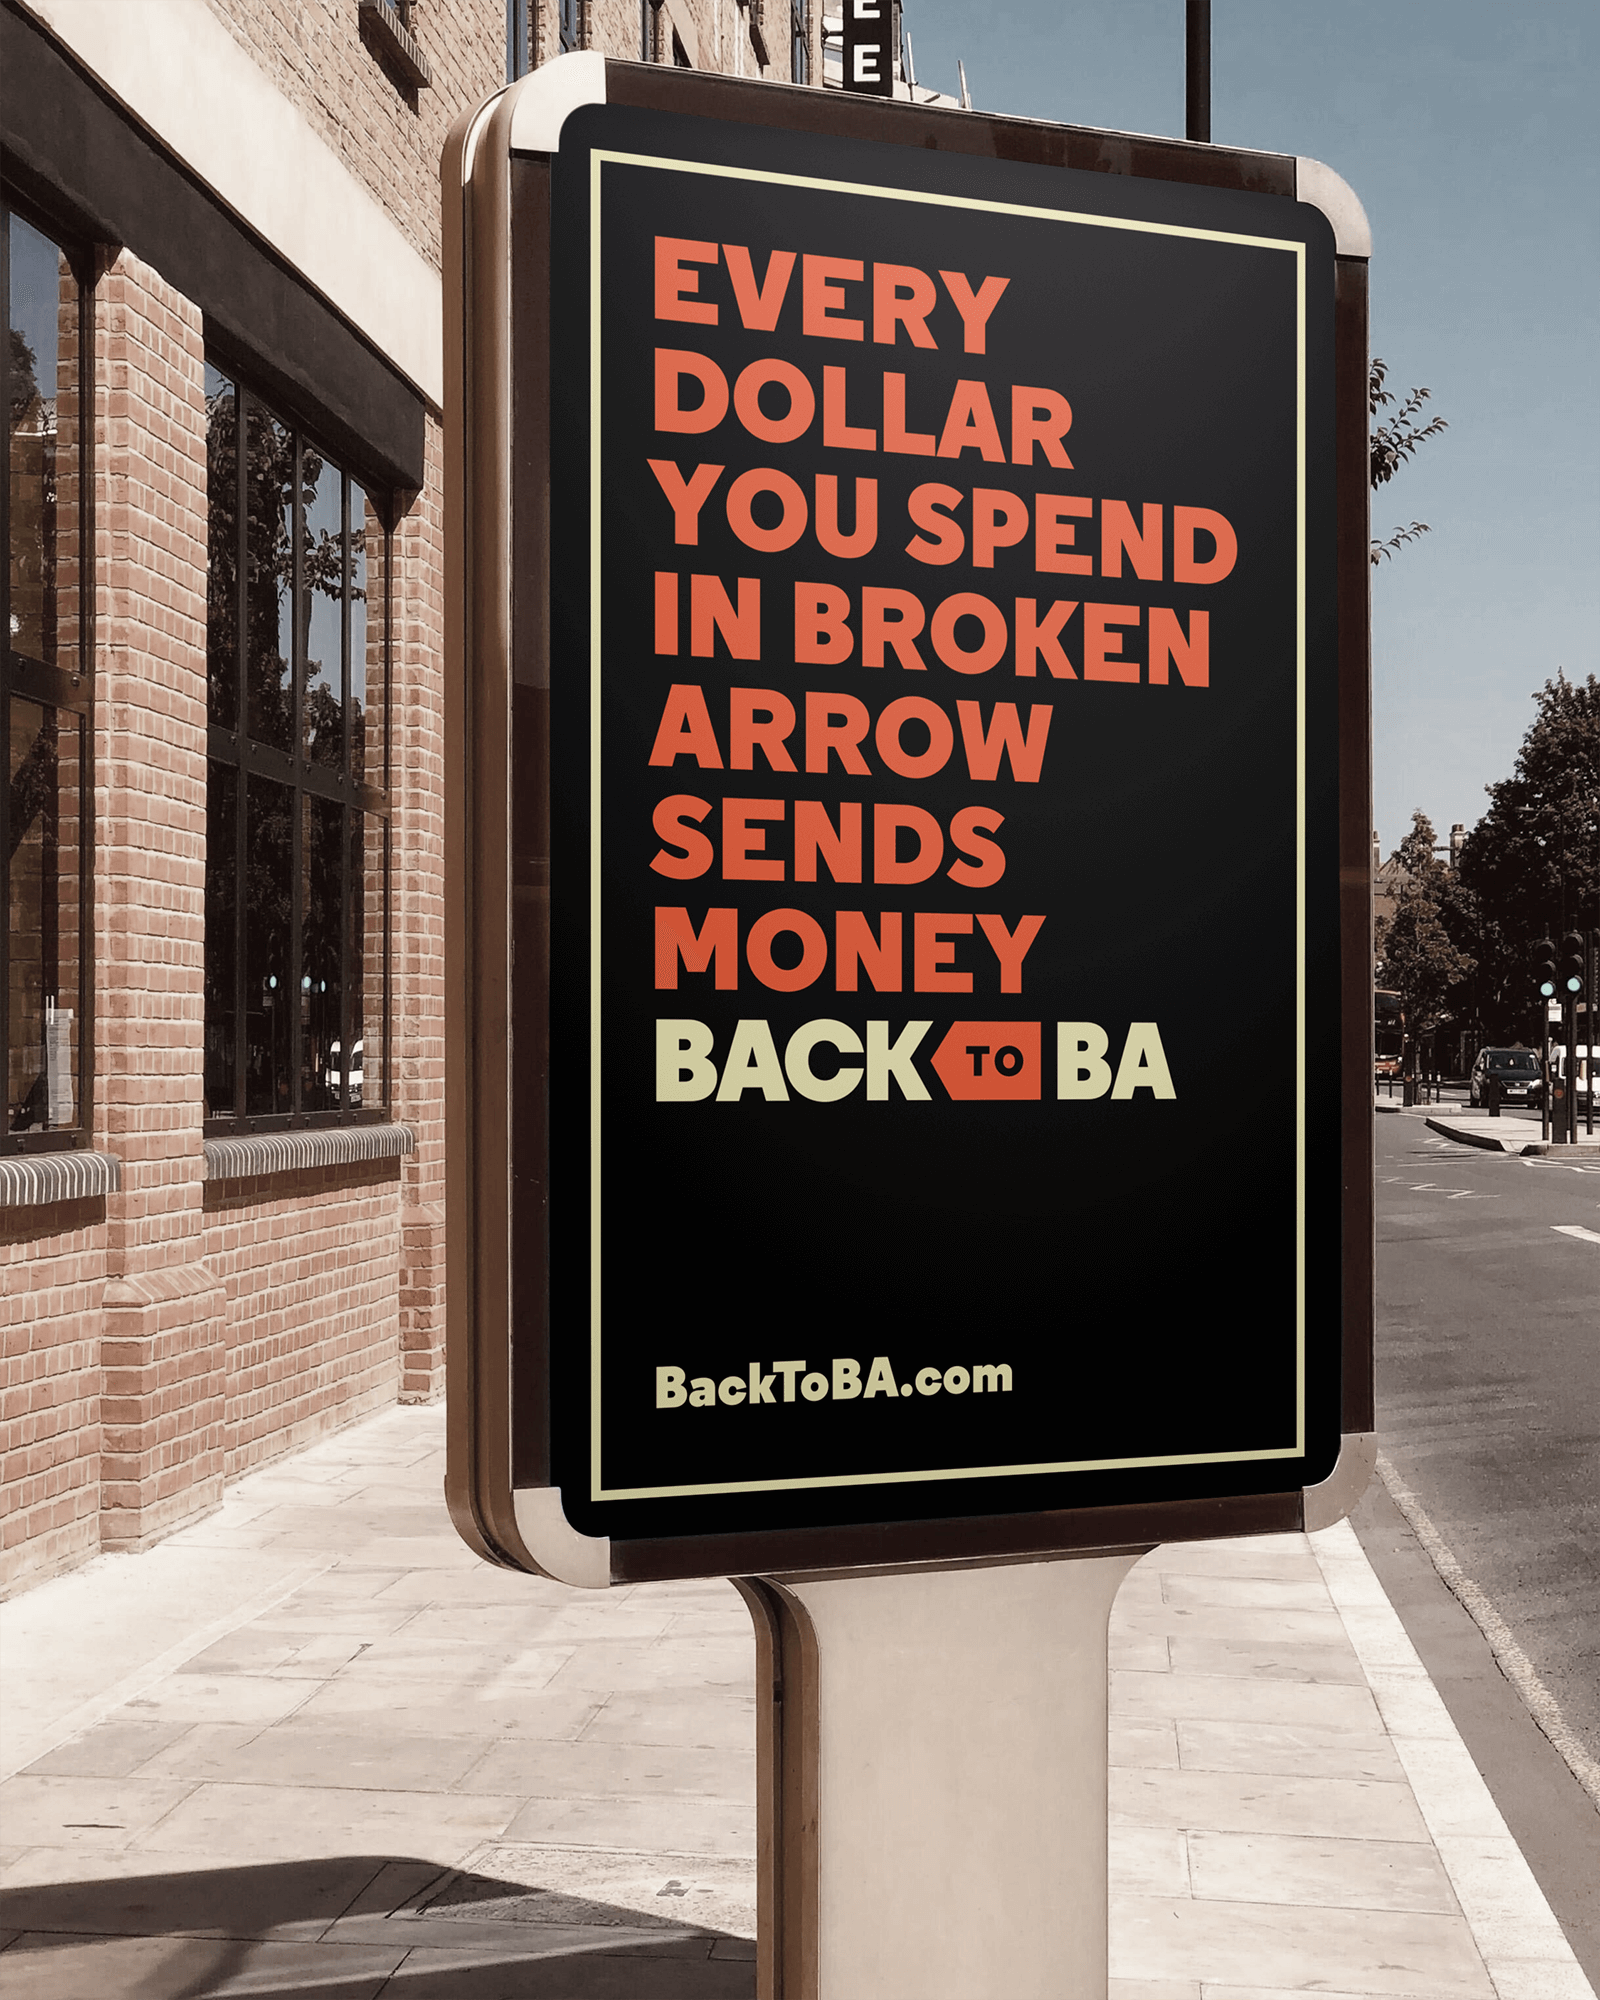 A digital advertisement for Back to B.A.